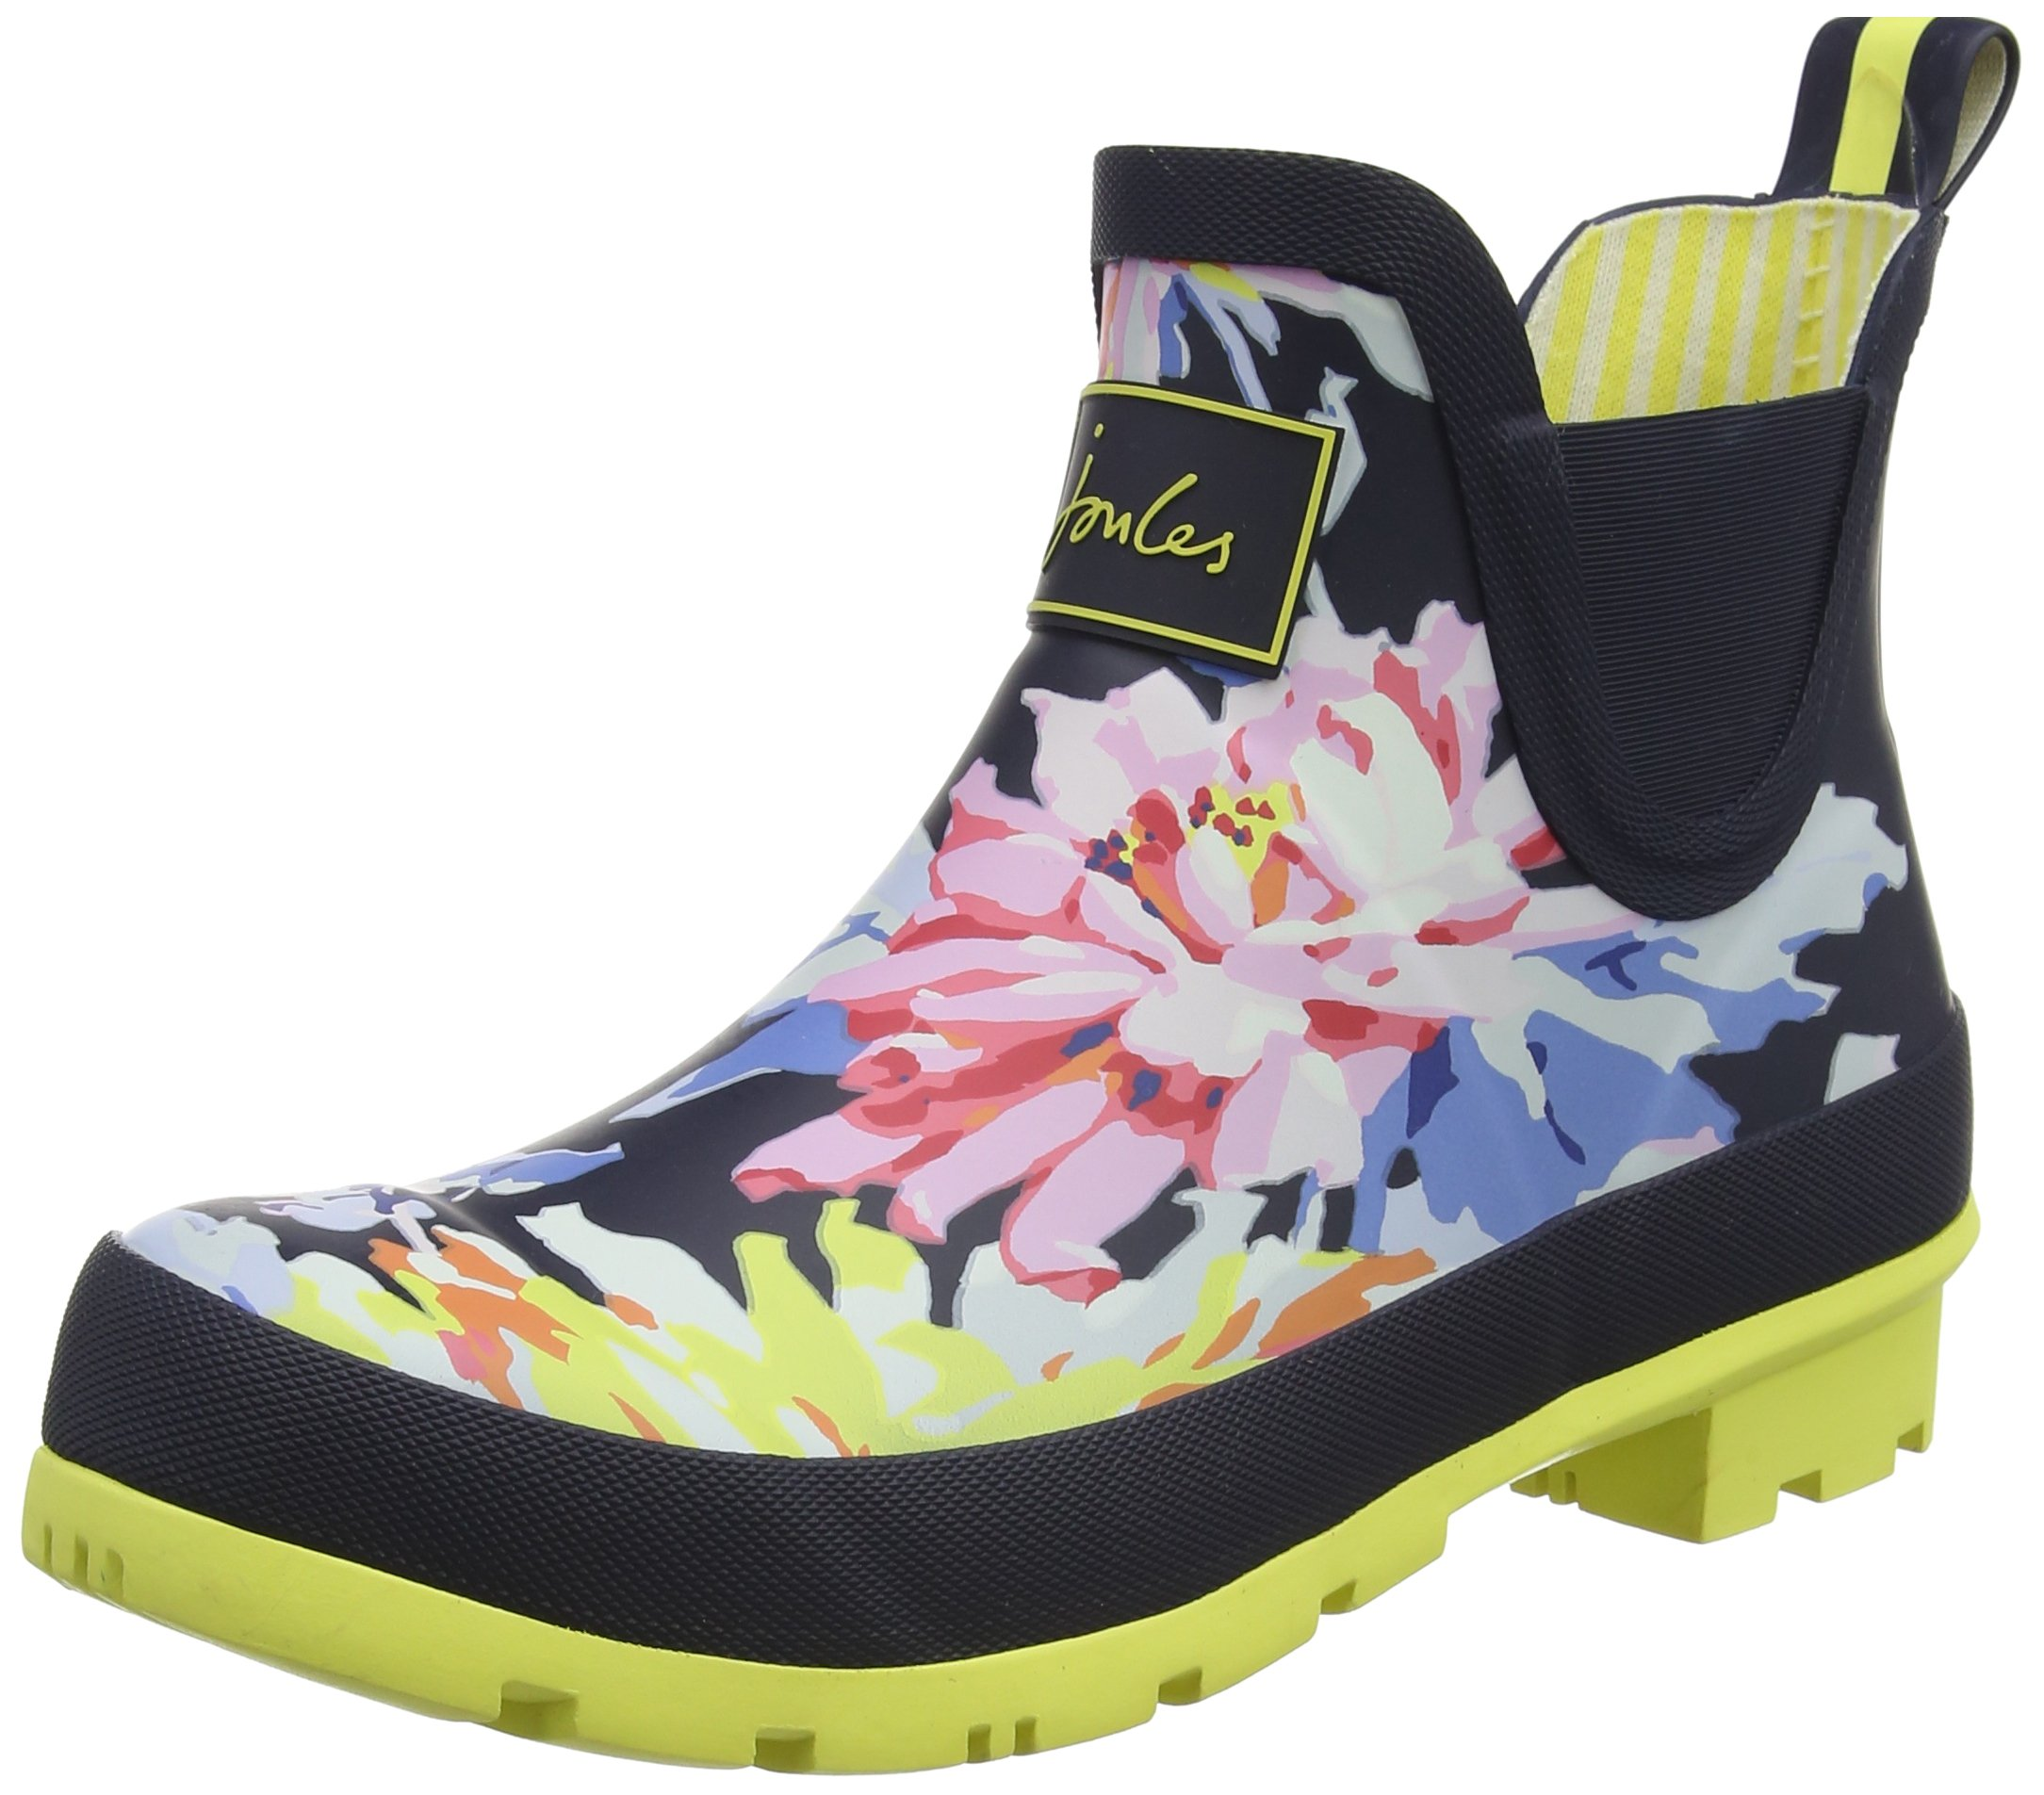 Joules Women's Wellibob Chelsea Boot Navy Whitstable Floral Rubber 7 B US